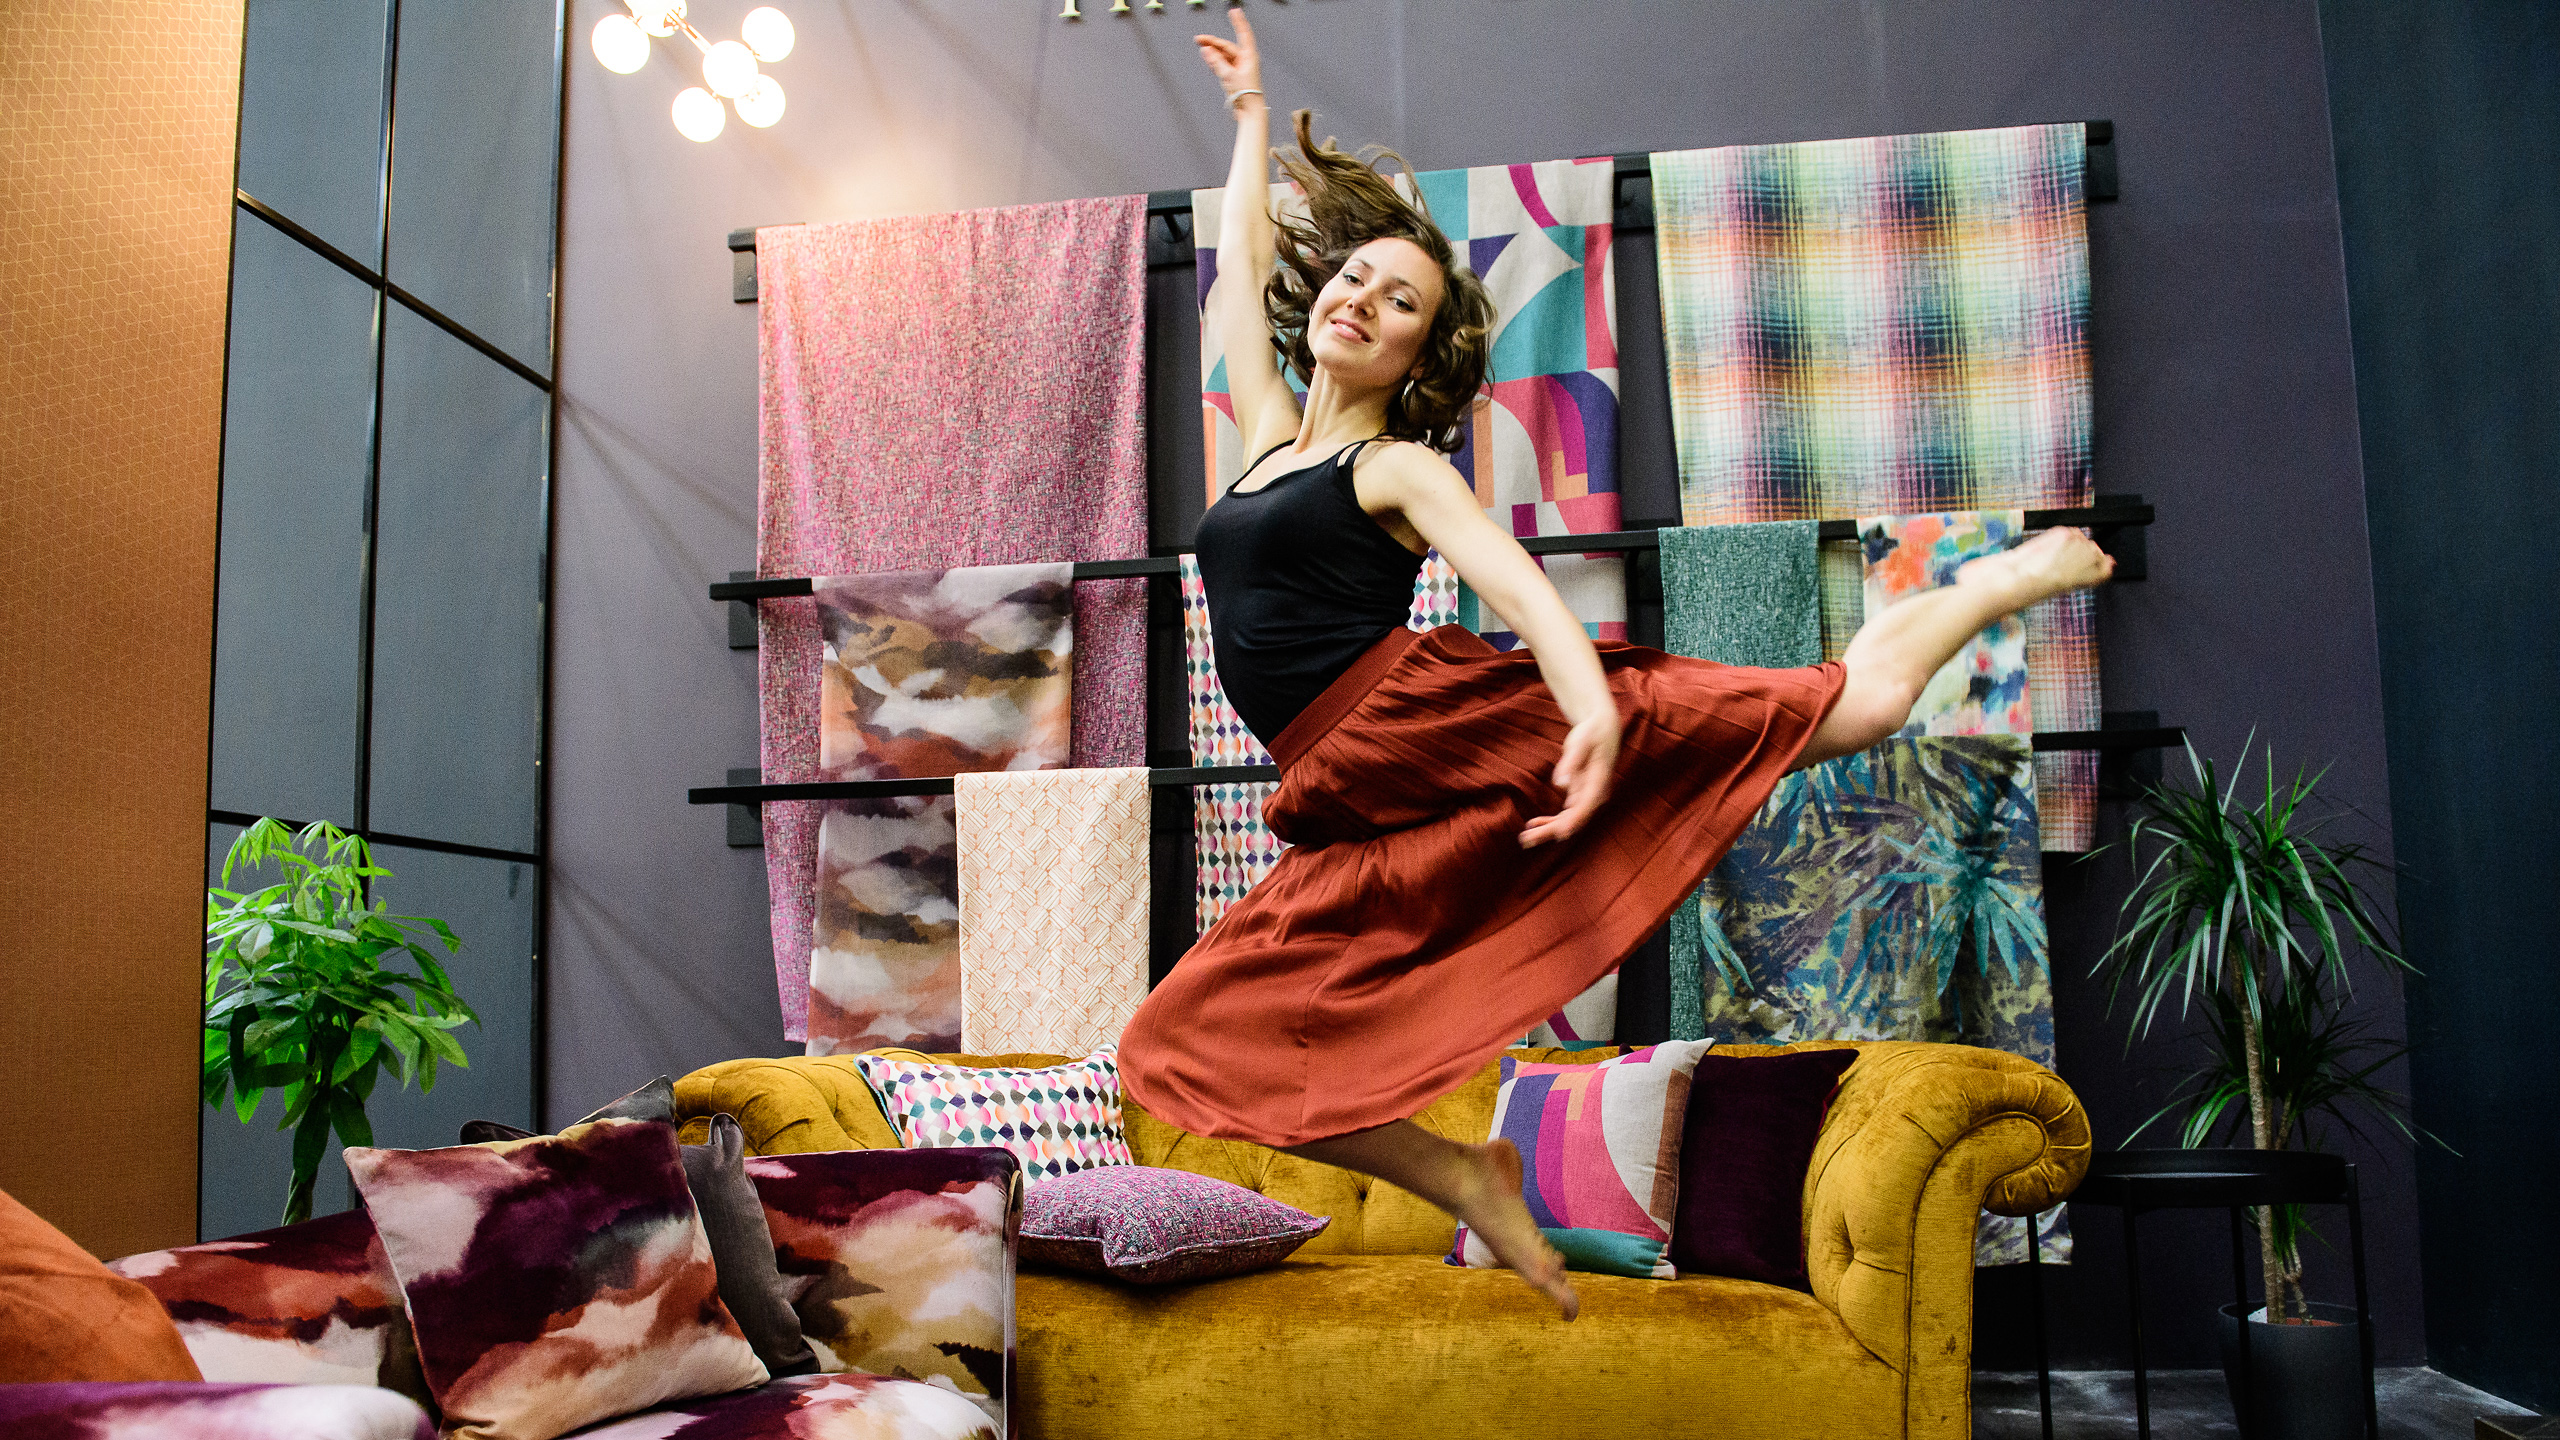 Frankfurt Uitgaan Heimtextil International Trade Fair For Home And Contract Textiles